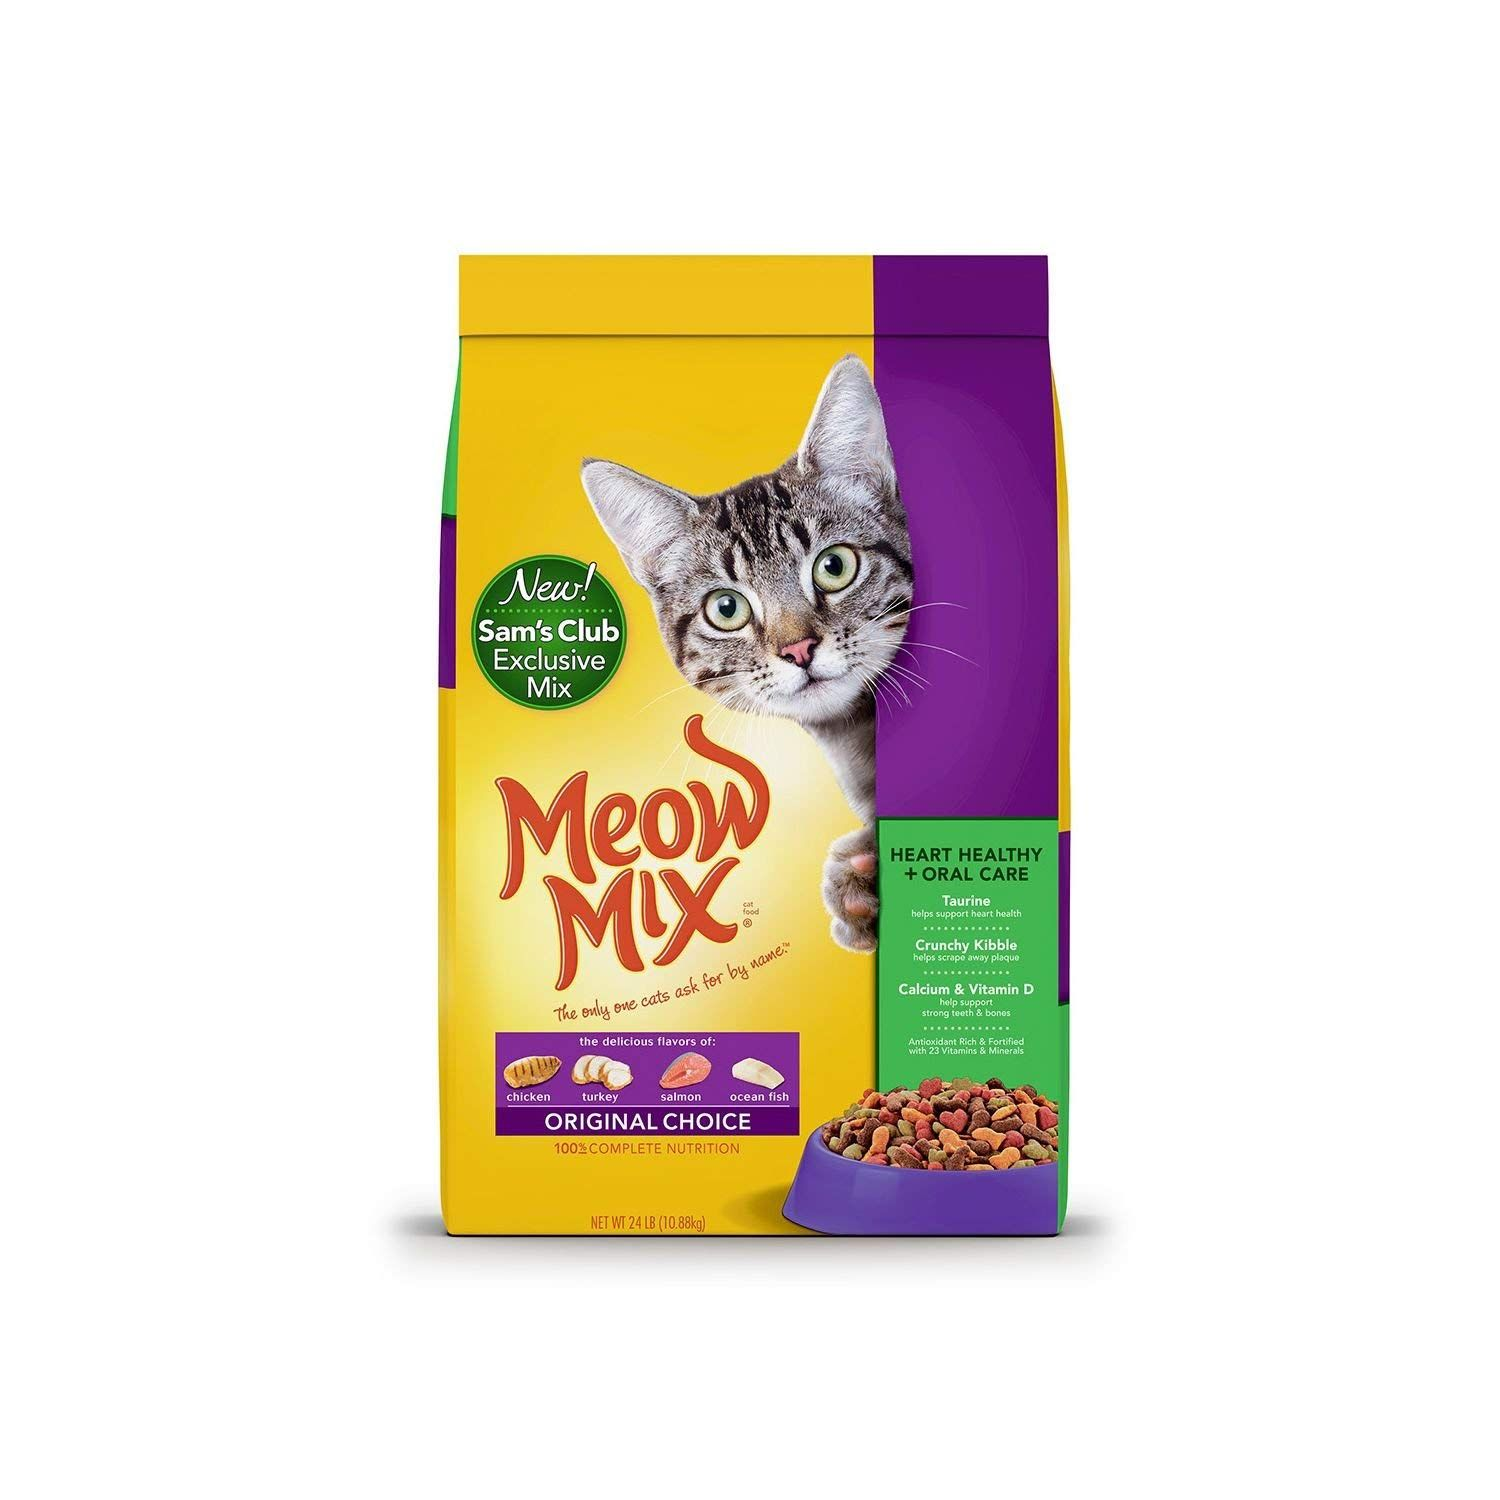 Meow Mix Original Choice Dry Cat Food Heart Health And Oral Care Formula 24 Lbs Pack Of 6 We Appreciate You For Dry Cat Food Cat Pet Supplies Cat Food